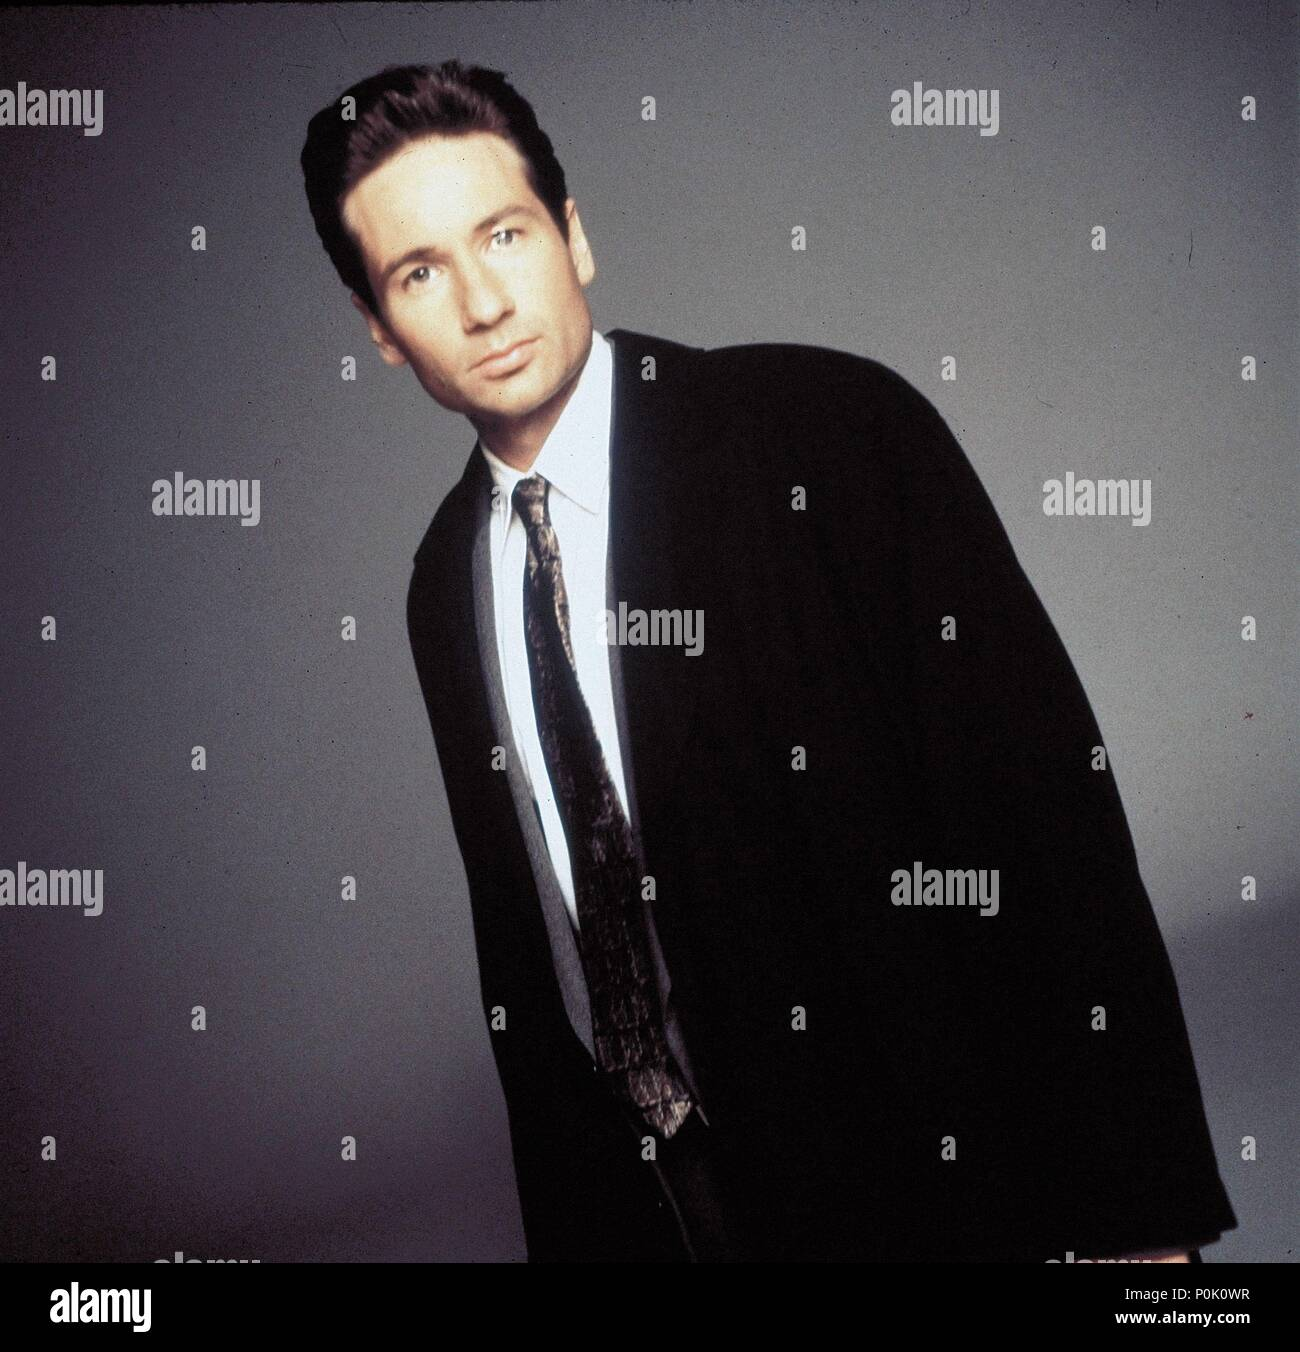 Original Film Title: THE X FILES.  English Title: THE X FILES.  Film Director: CHRIS CARTER; ROB BOWMAN; DAVID NUTTER.  Year: 1993.  Stars: DAVID DUCHOVNY. Credit: FOX FILMS / Album - Stock Image